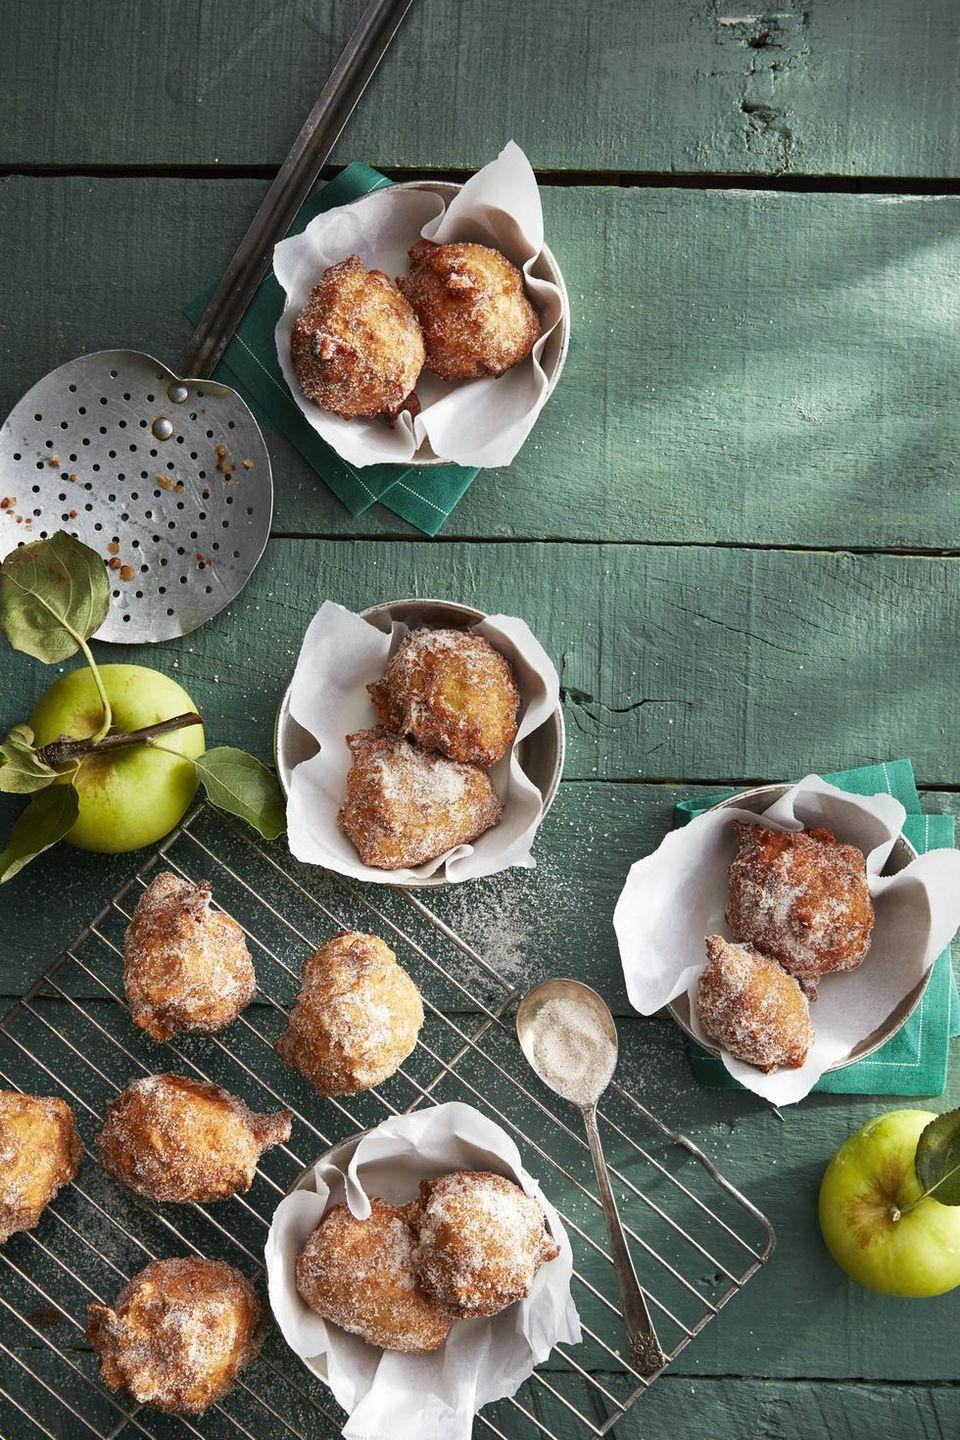 "<p>Pretend like you're hosting Thanksgiving at the apple orchard and fry up apple cider doughnuts.</p><p><em><a href=""https://www.countryliving.com/food-drinks/a23390937/pie-spiced-apple-fritters-recipe/"" rel=""nofollow noopener"" target=""_blank"" data-ylk=""slk:Get the recipe from Country Living »"" class=""link rapid-noclick-resp"">Get the recipe from Country Living »</a></em></p>"